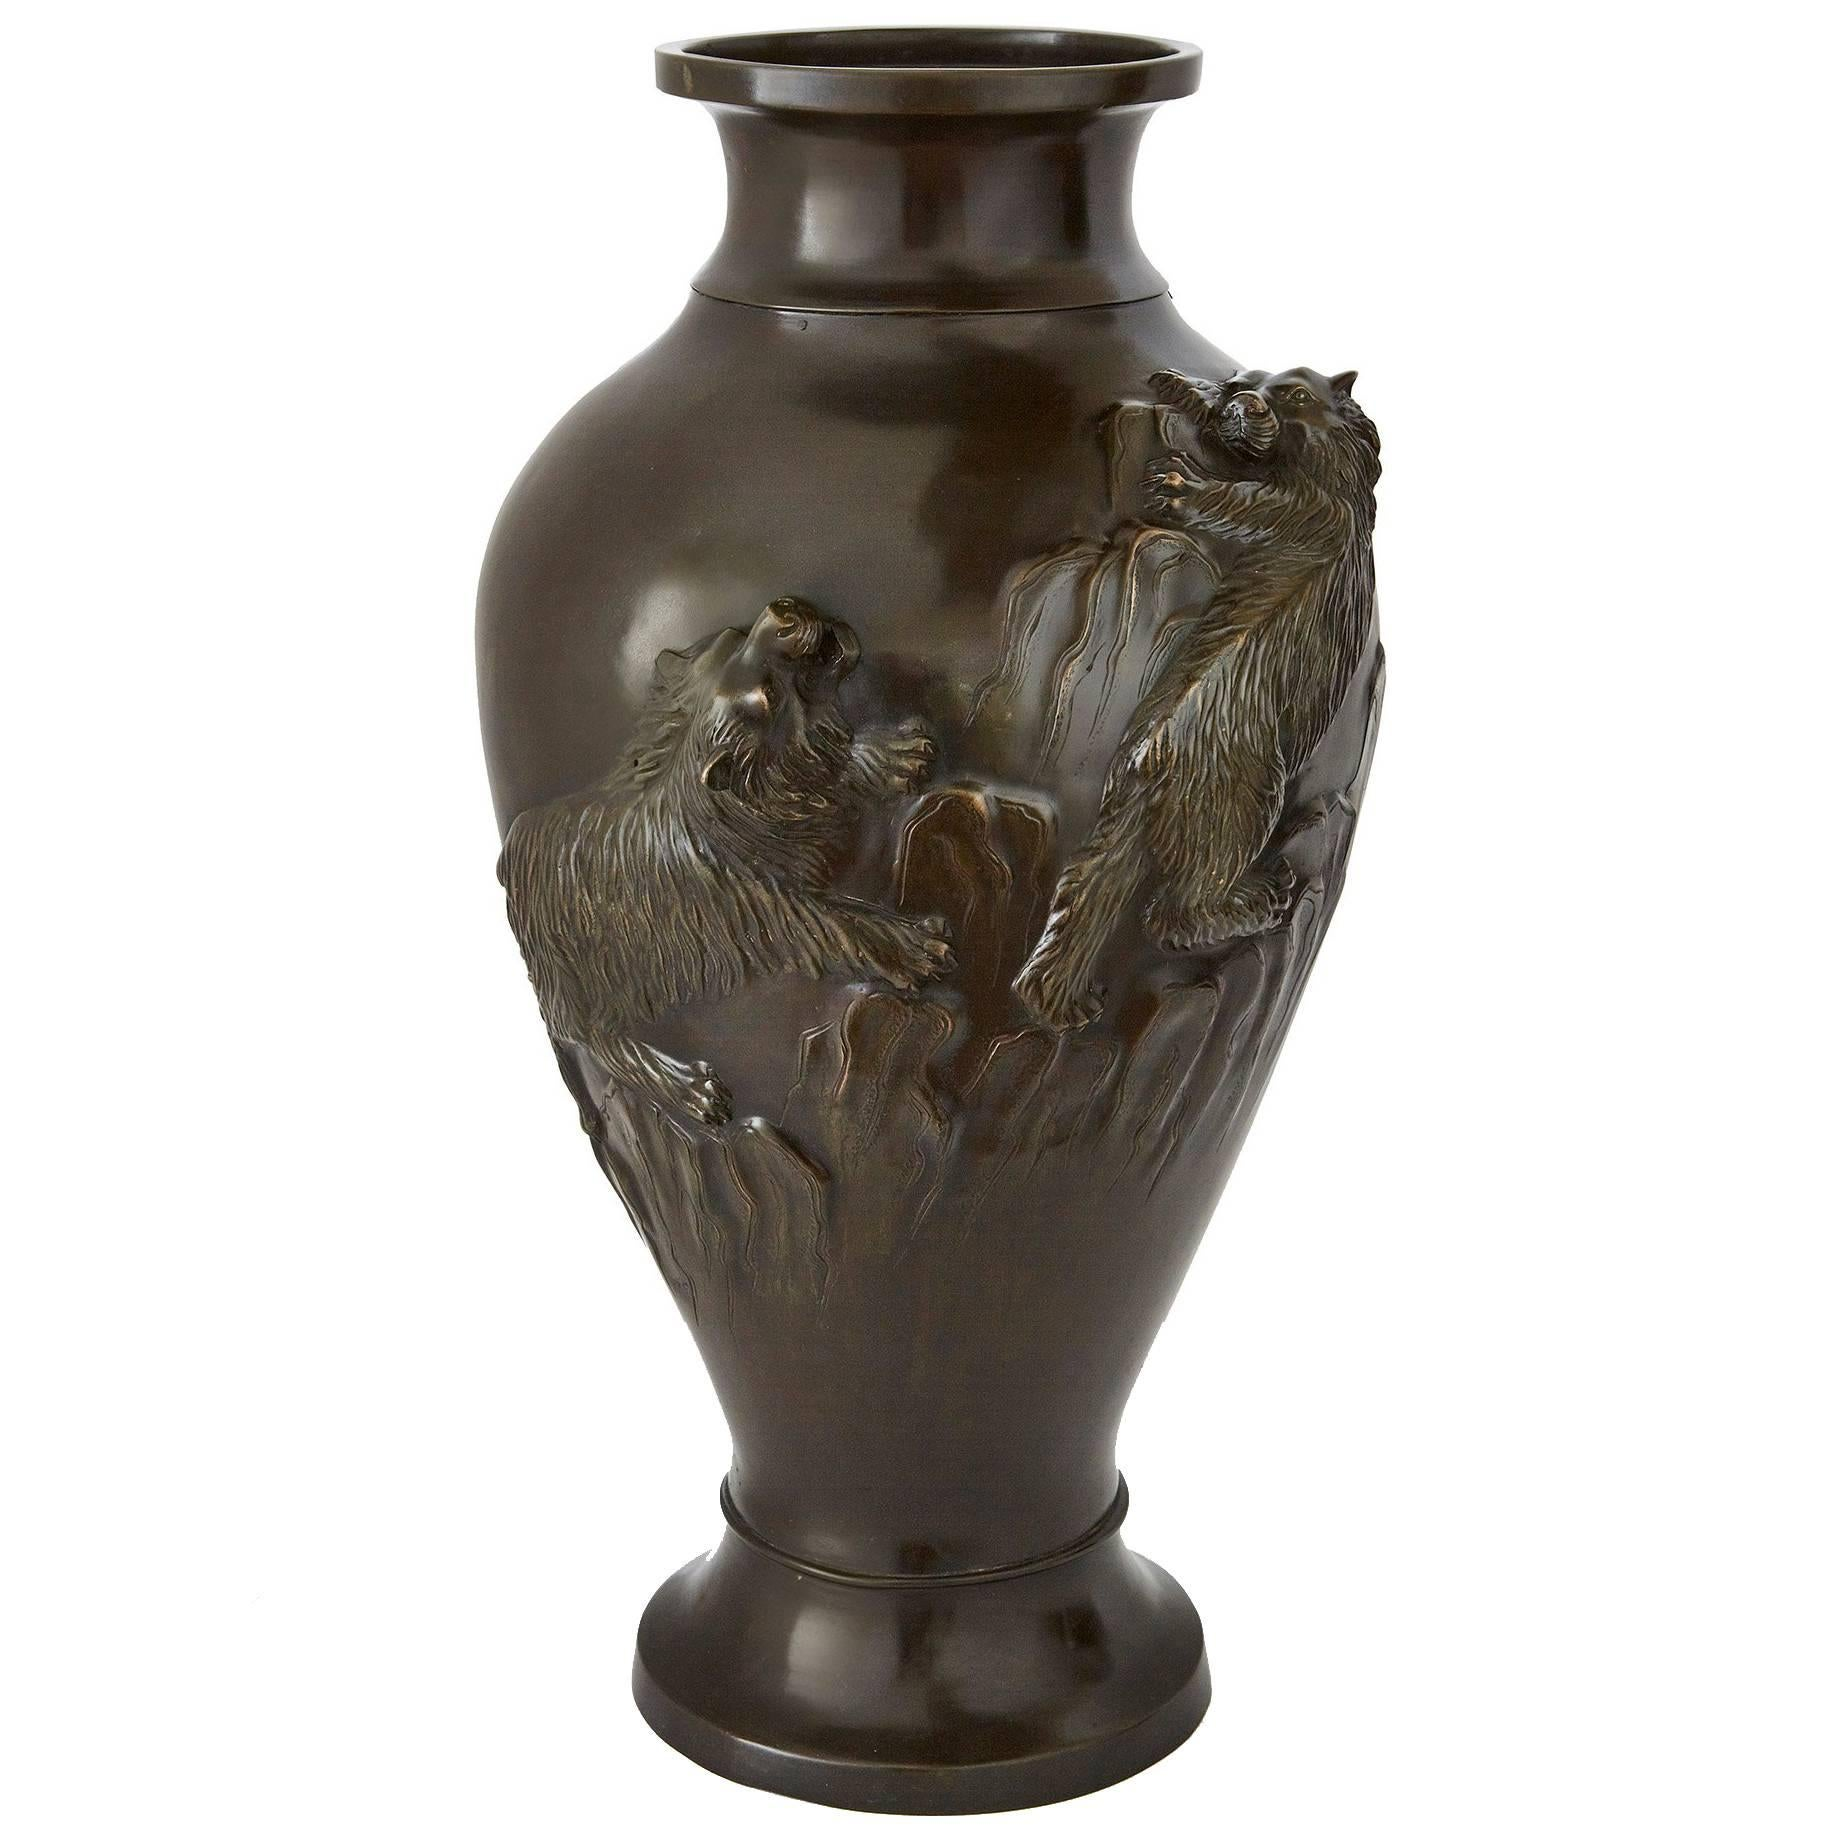 Antique Japanese Decorated Bronze Baluster Vase from the Meiji Period